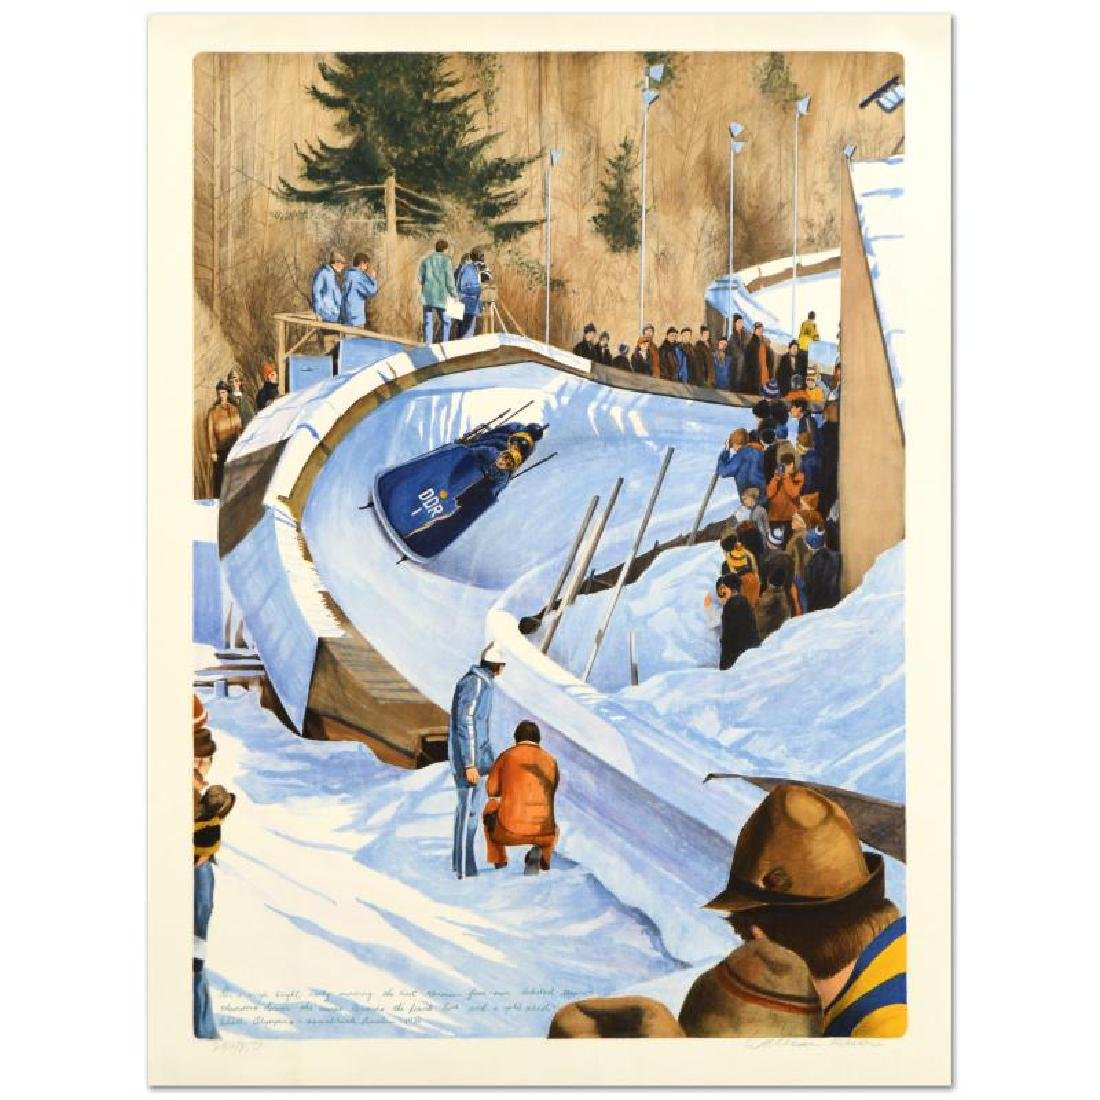 4-Man Bobsled - 1976 by Nelson, William